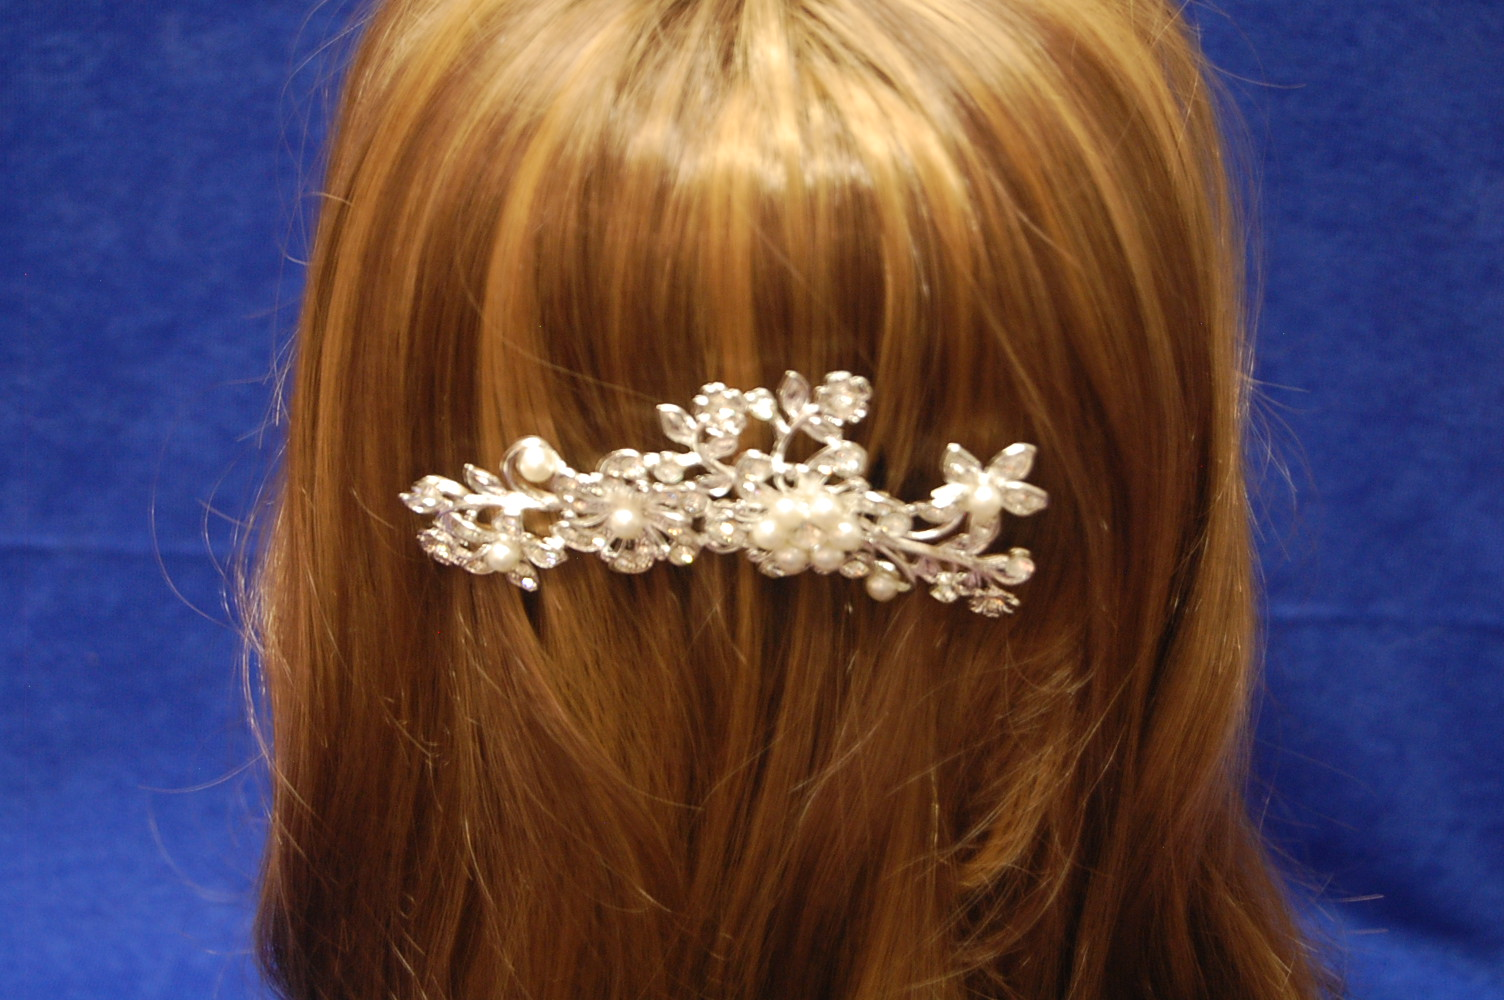 Hair slide wedding